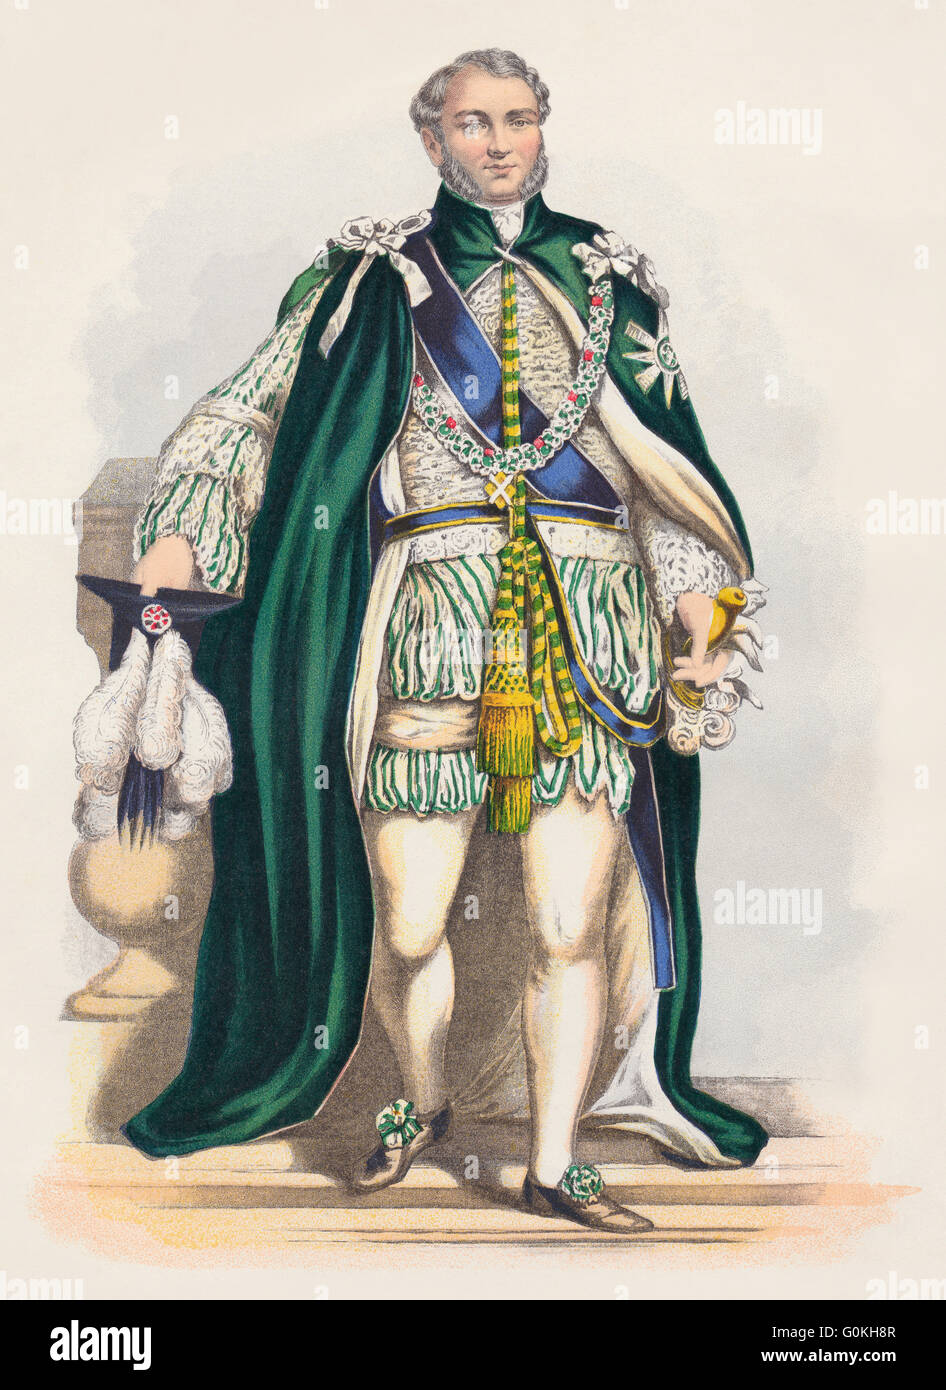 Prince Augustus Frederick, Duke of Sussex, 1773-1843, in the robes of a Knight of the Order of the Thistle - Stock Image